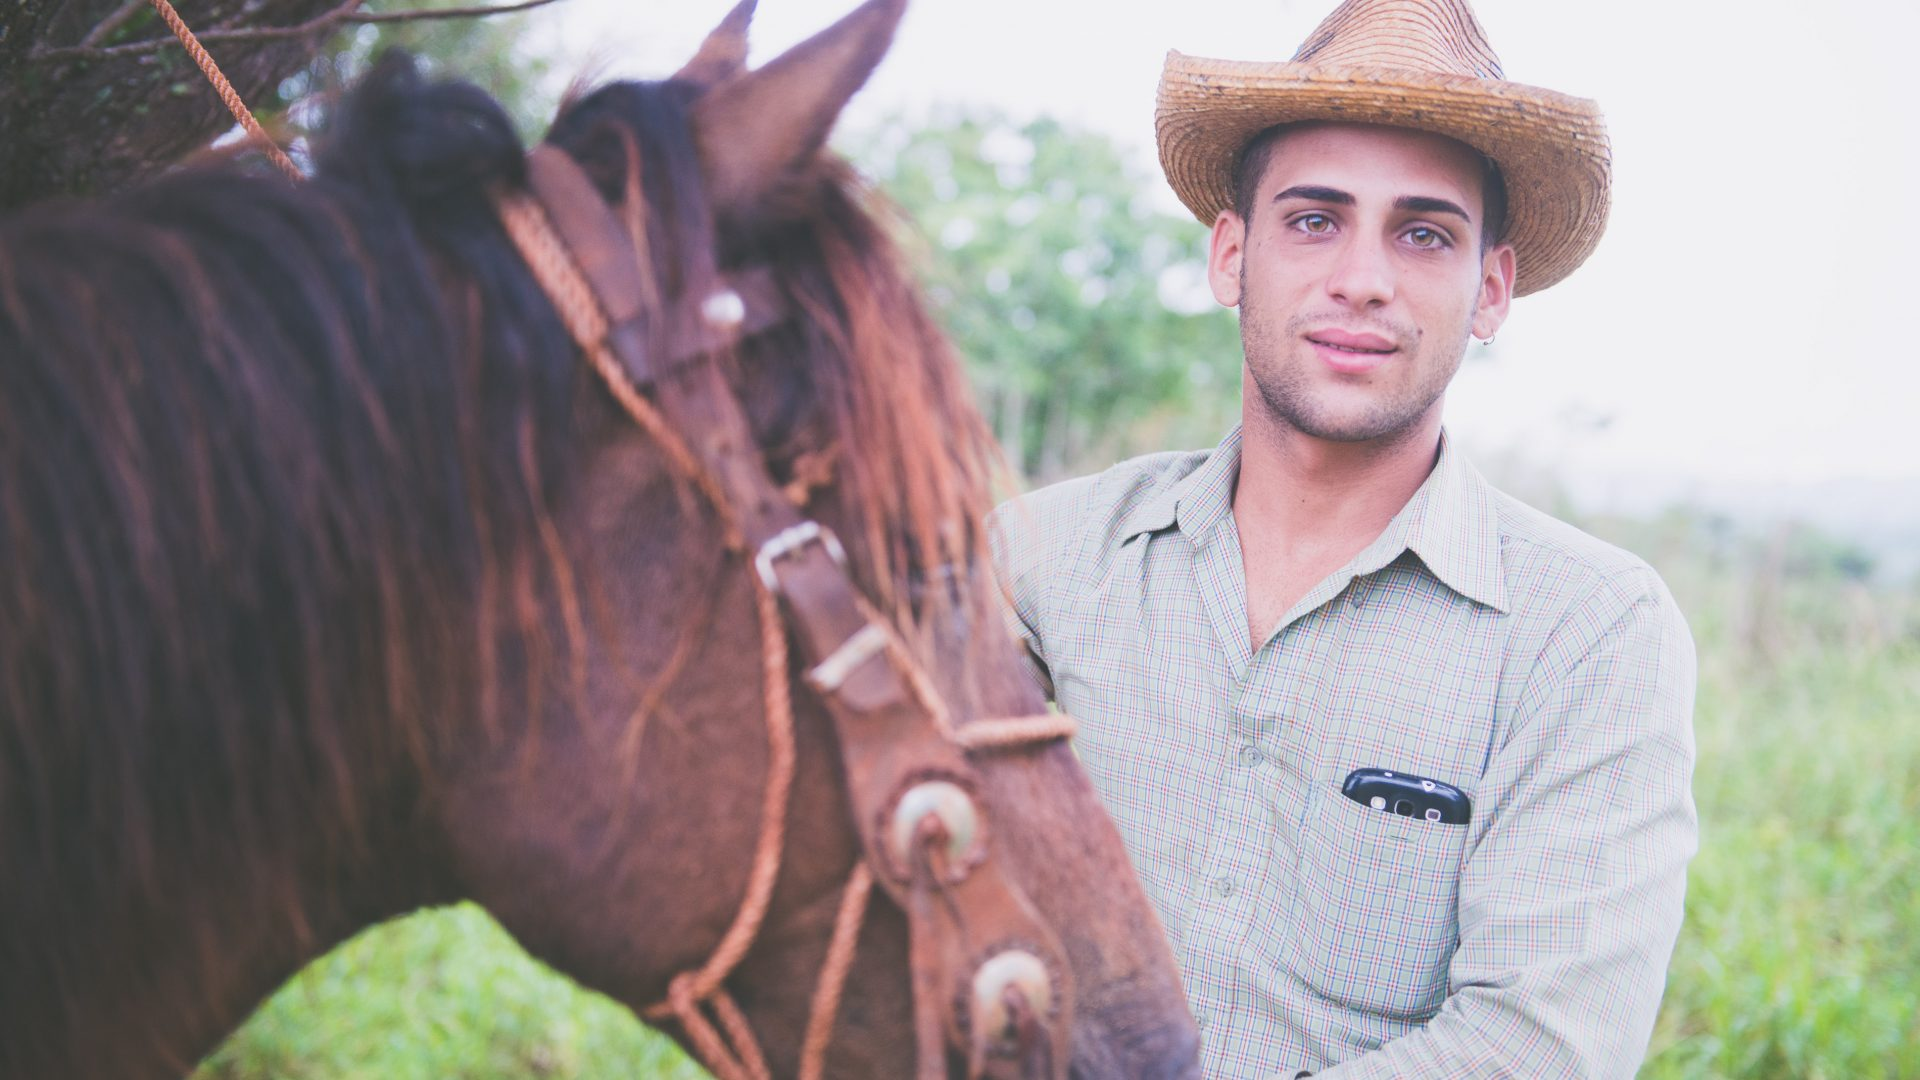 A cowboy and his horse in the Valle de los Ingenios, or Sugar Mill Valley.